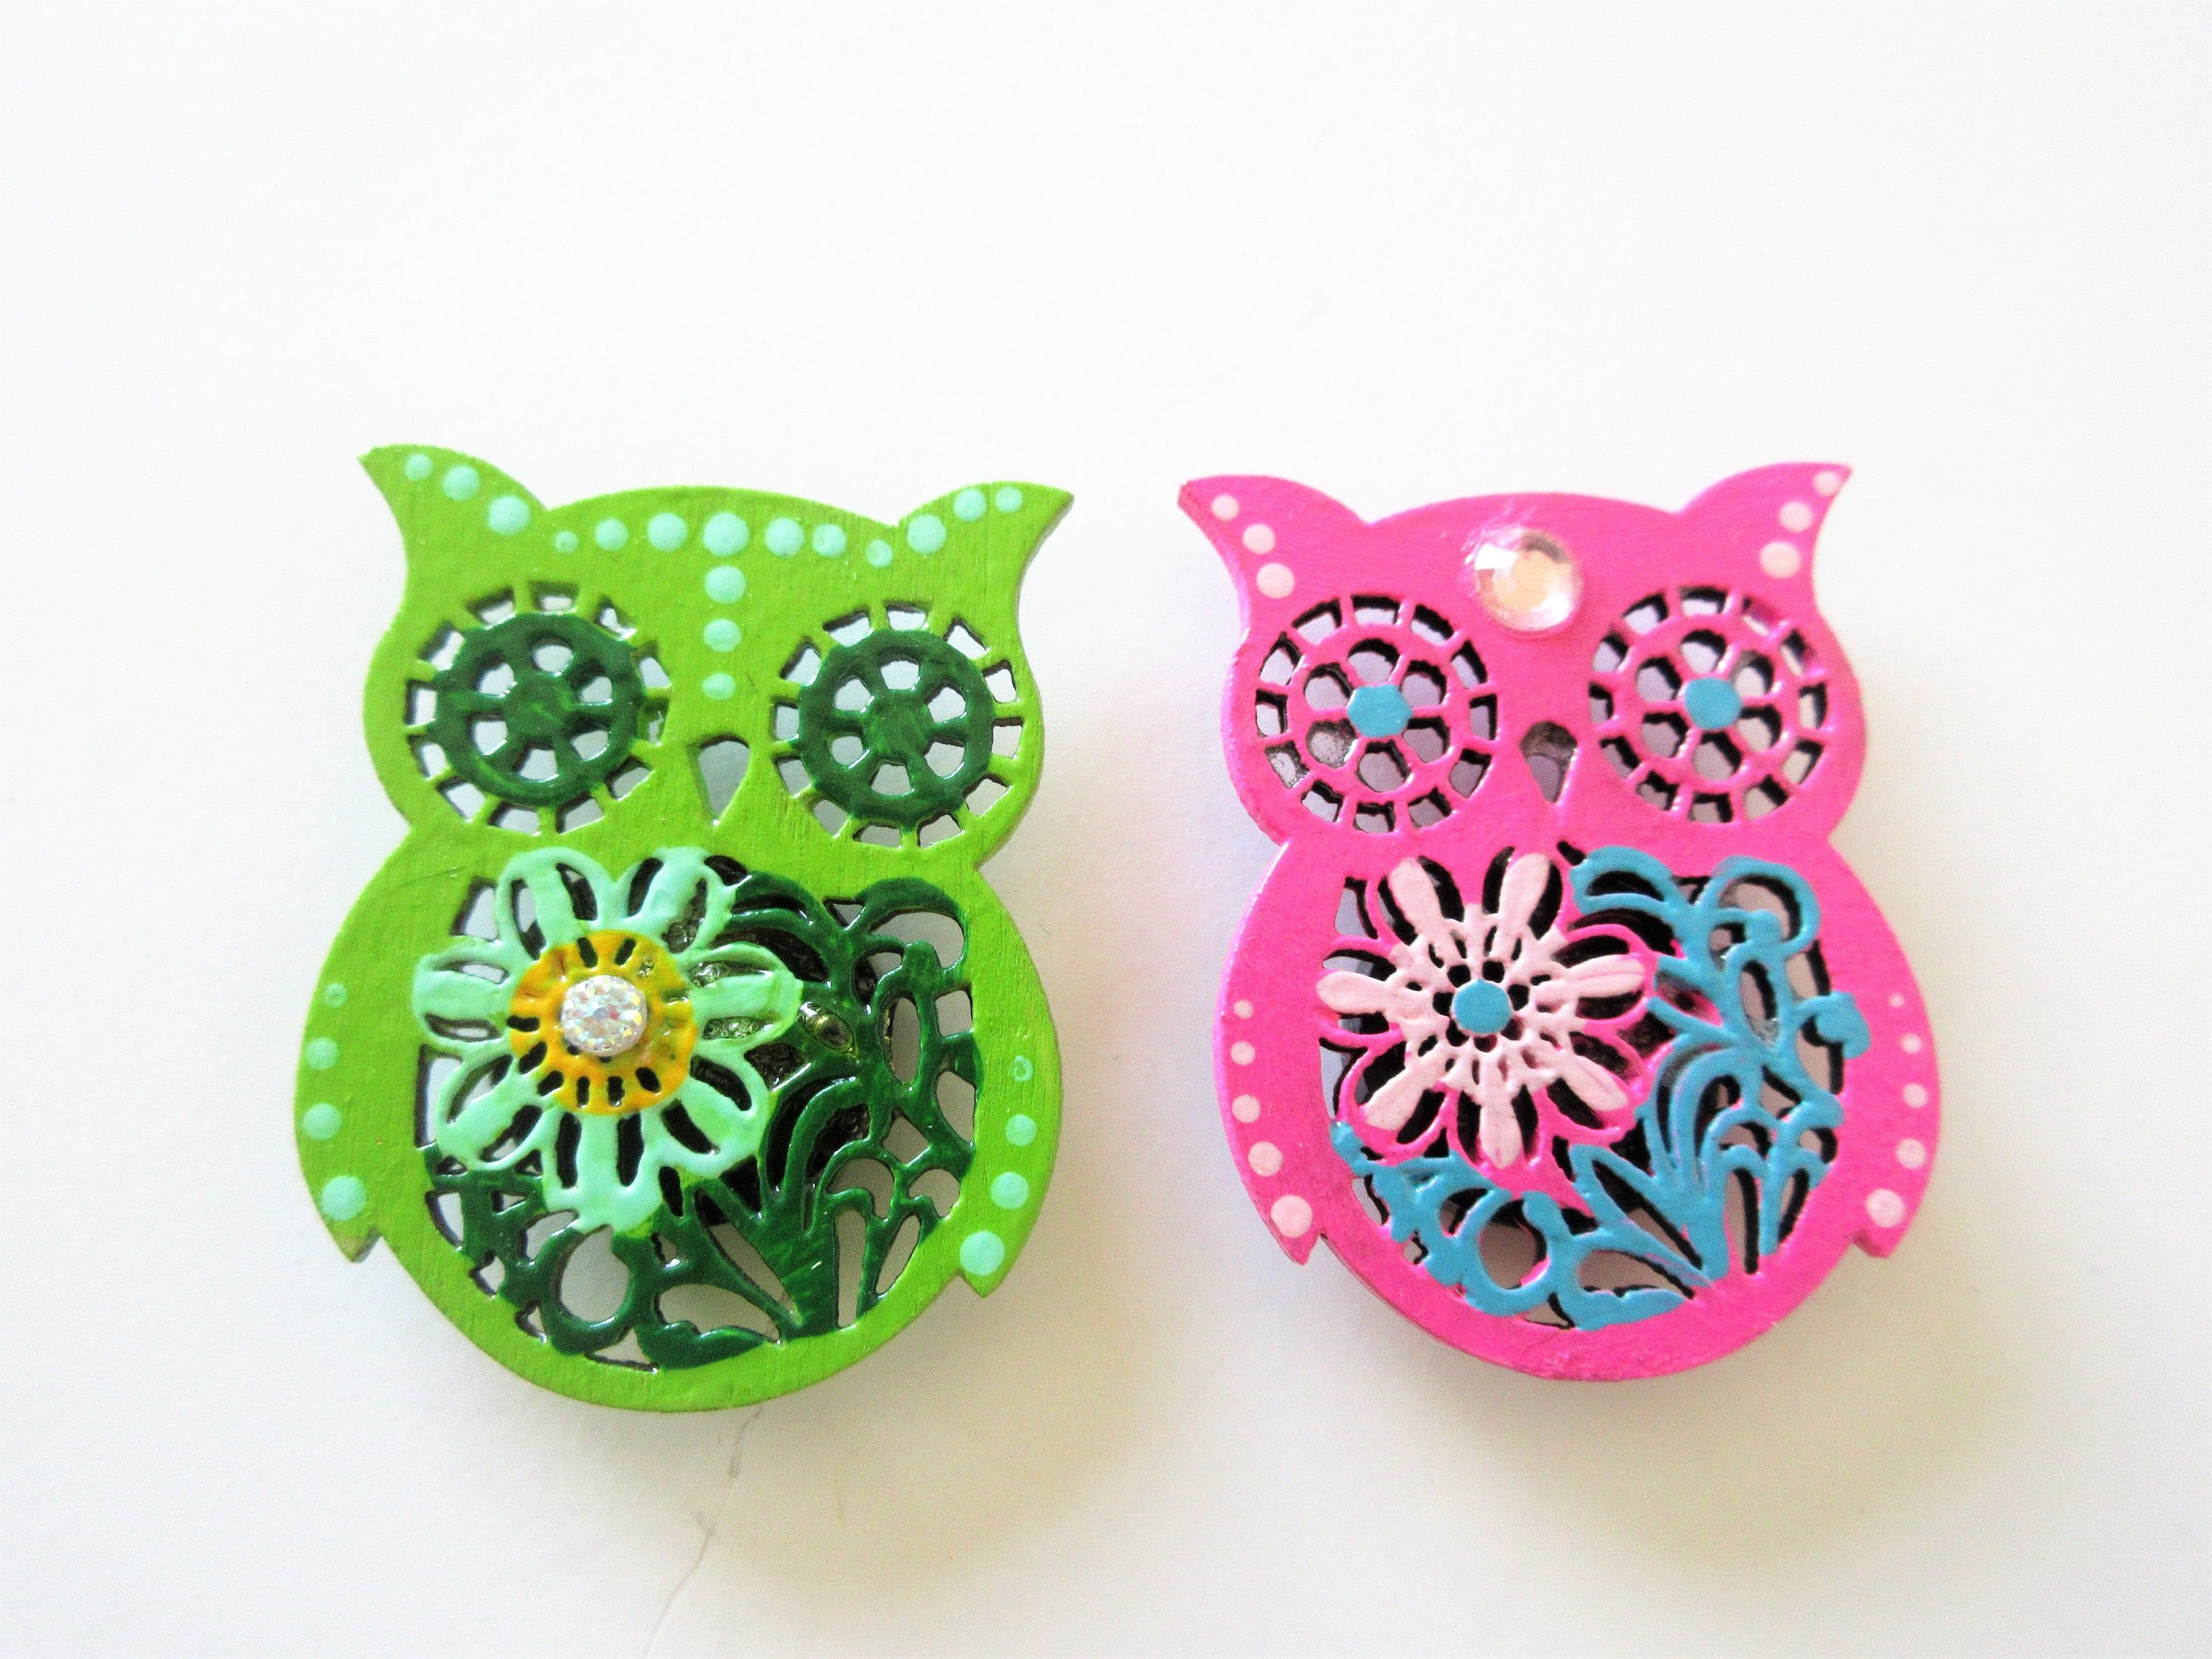 Colorful Owl Magnets Owl Decor Handpainted Magnets Painted Home Decor Owl Kitchen Small Gift Ideas Colourful Kitchen Decor Owls Floral Magnets Small Gifts Small Business Gifts